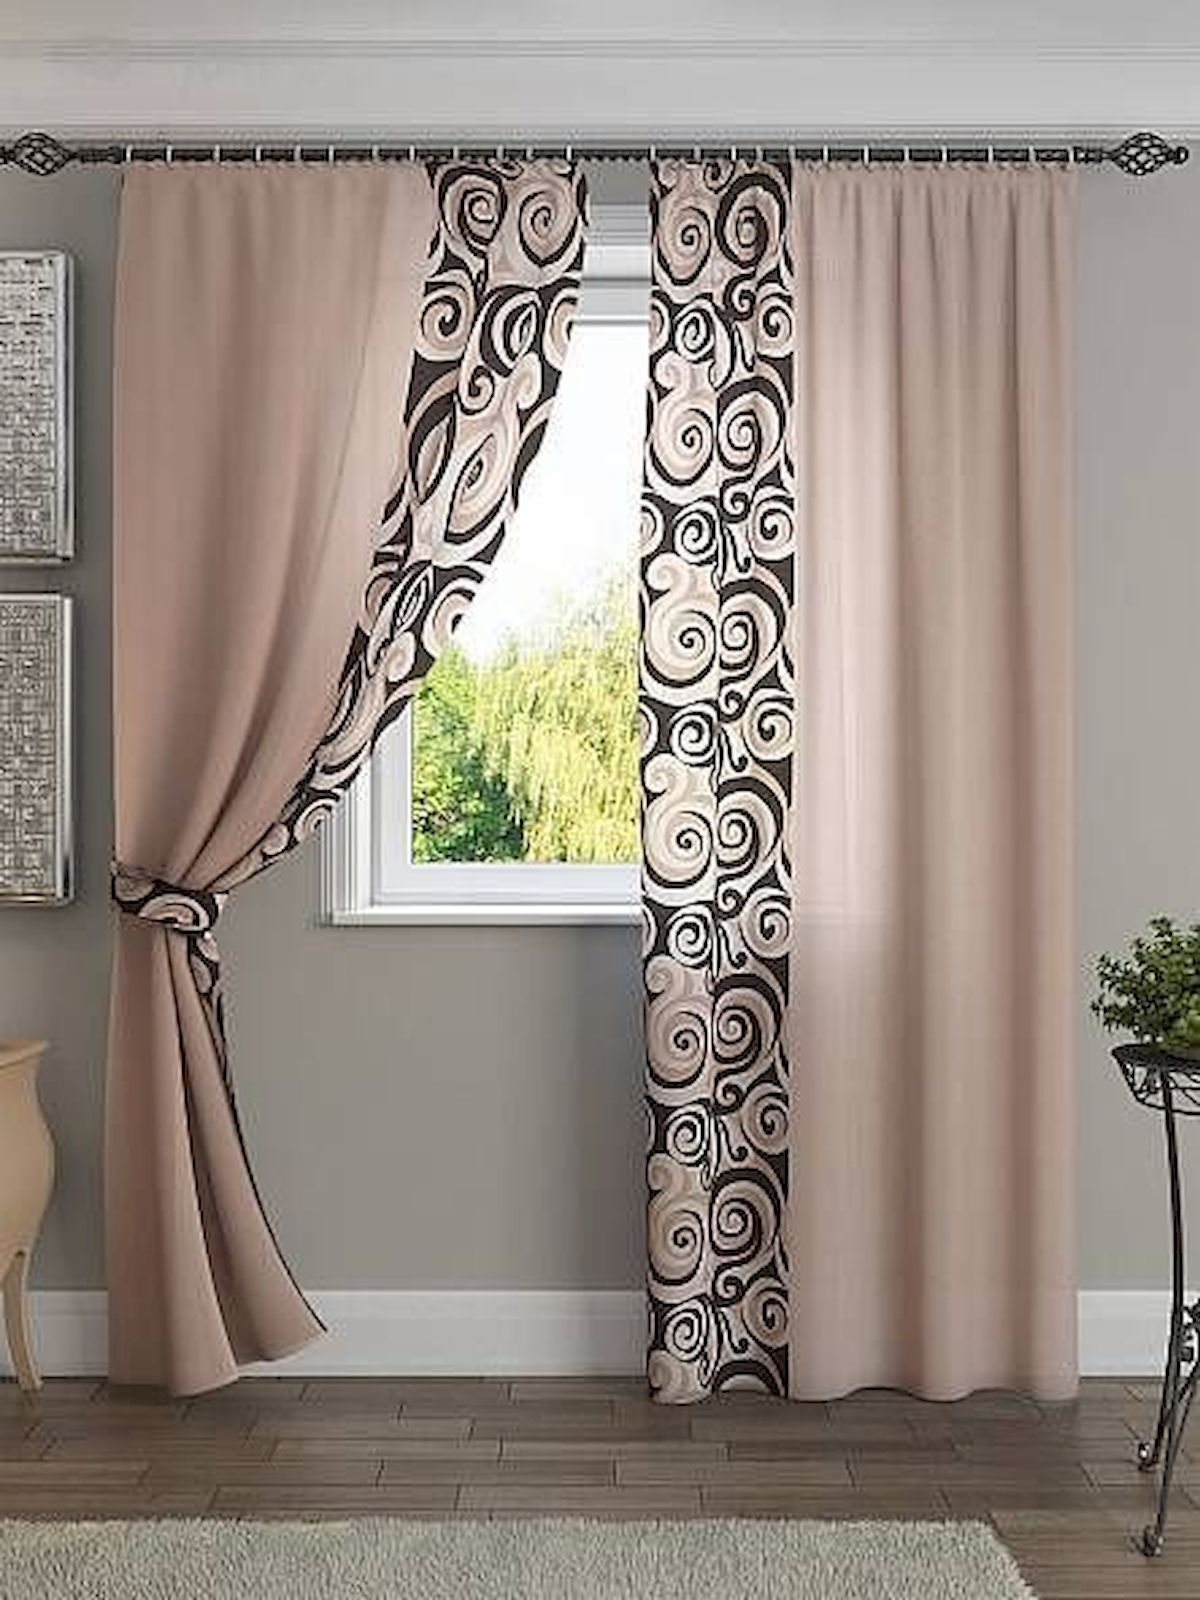 12 Adorable Window Curtains Design Ideas And Decor in 12 ...